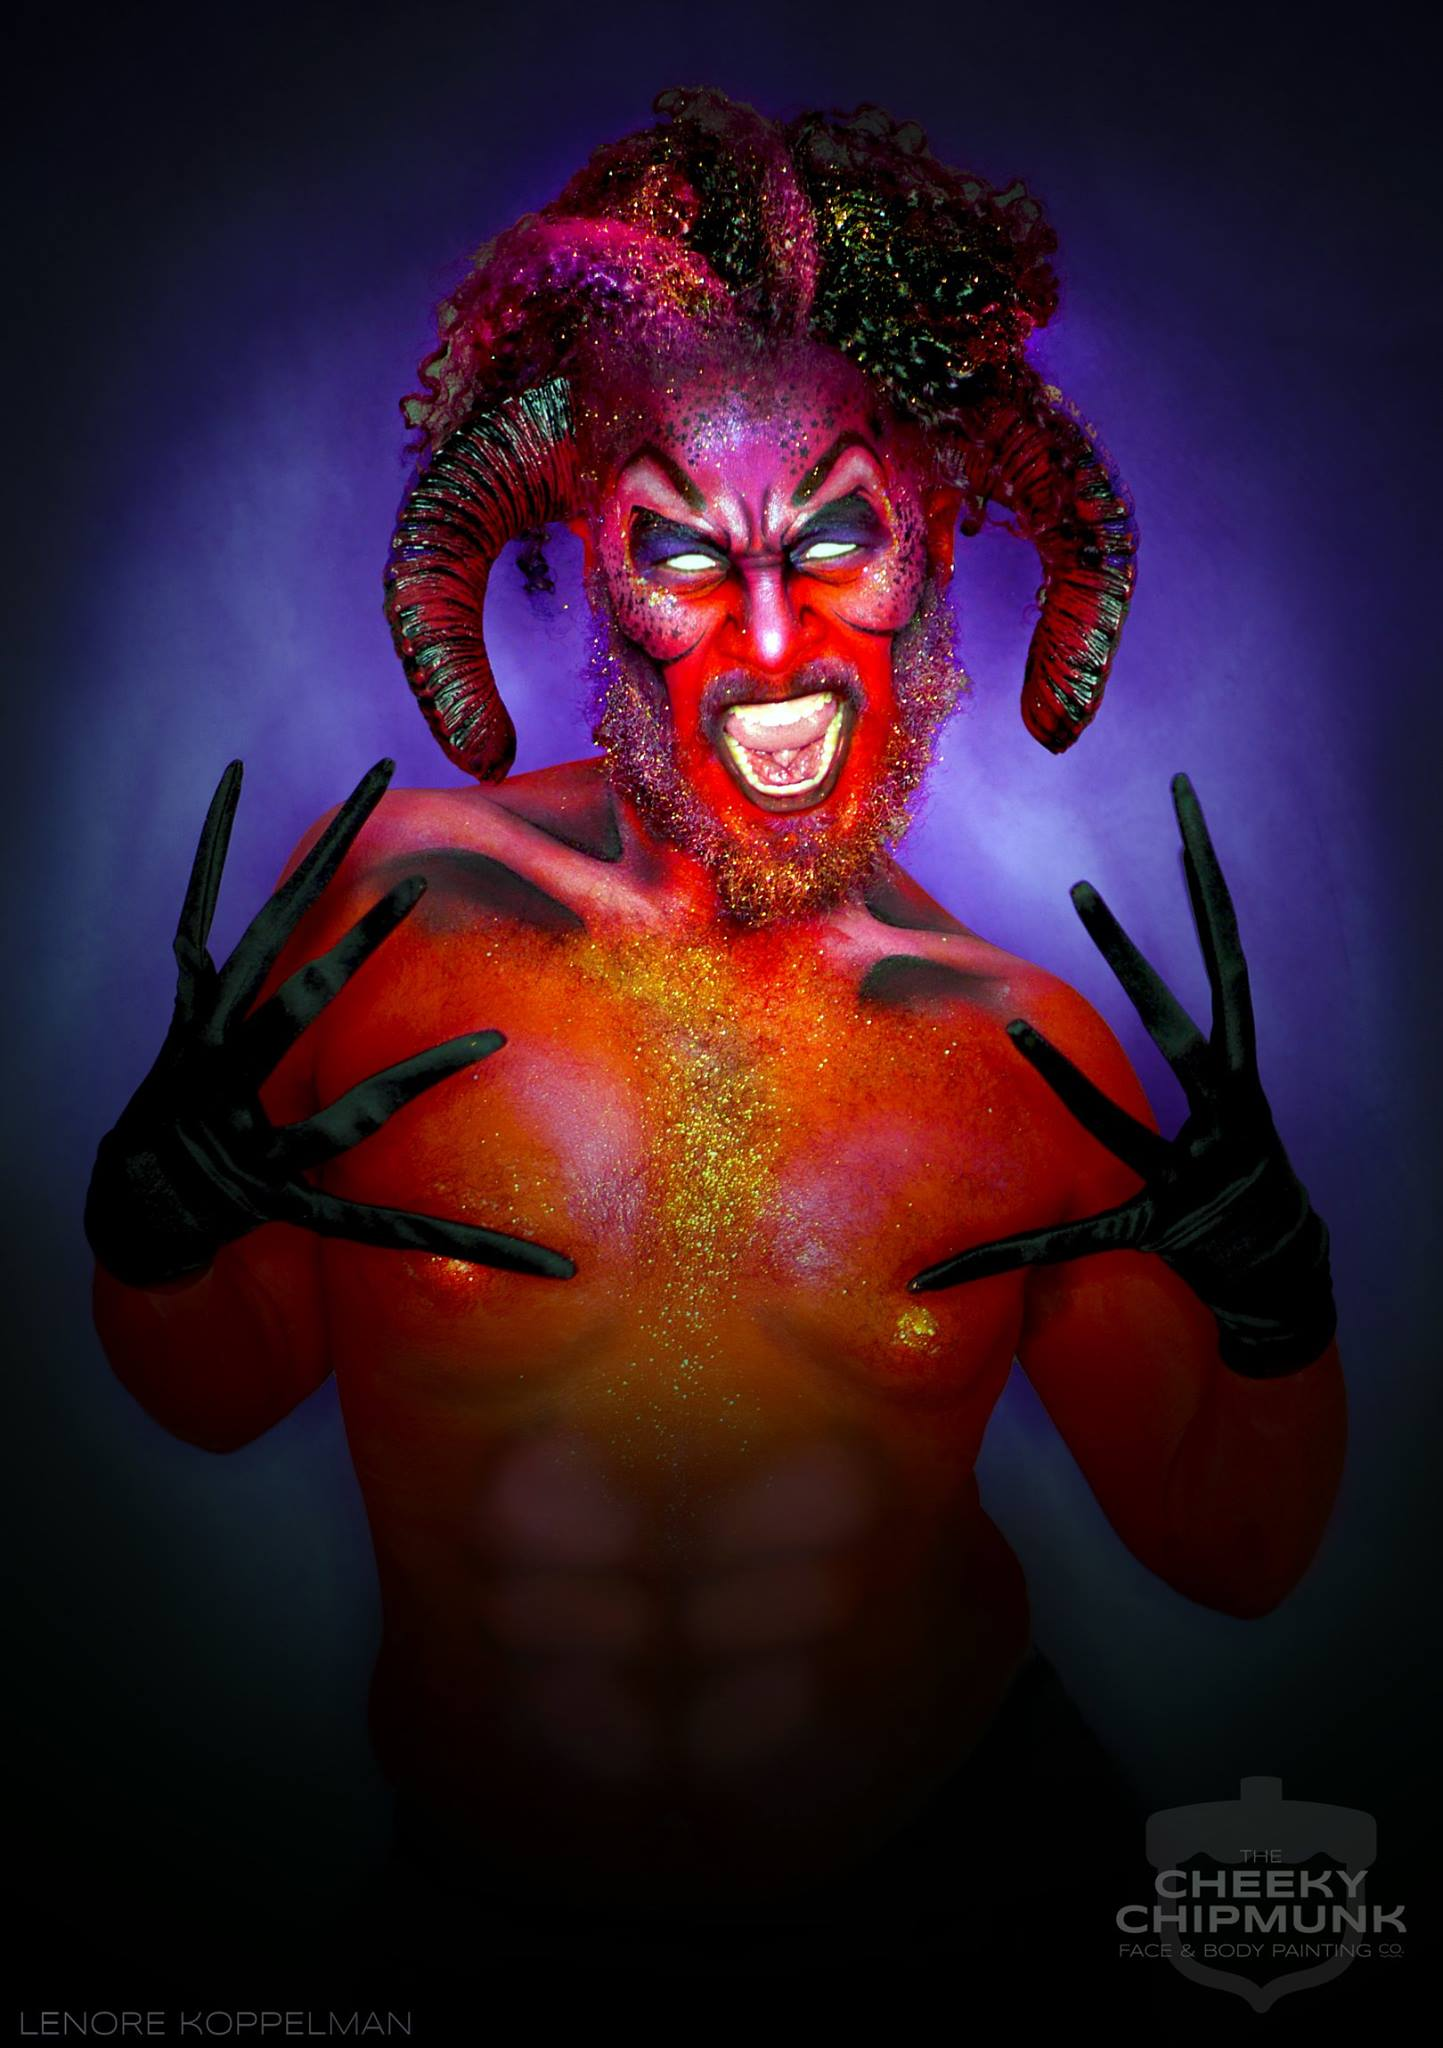 lenore-koppelman-the-cheeky-chipmunk-devil-satan-devilish-ish-red-horns-body-painting-sfx-makeup-halloween-nyc